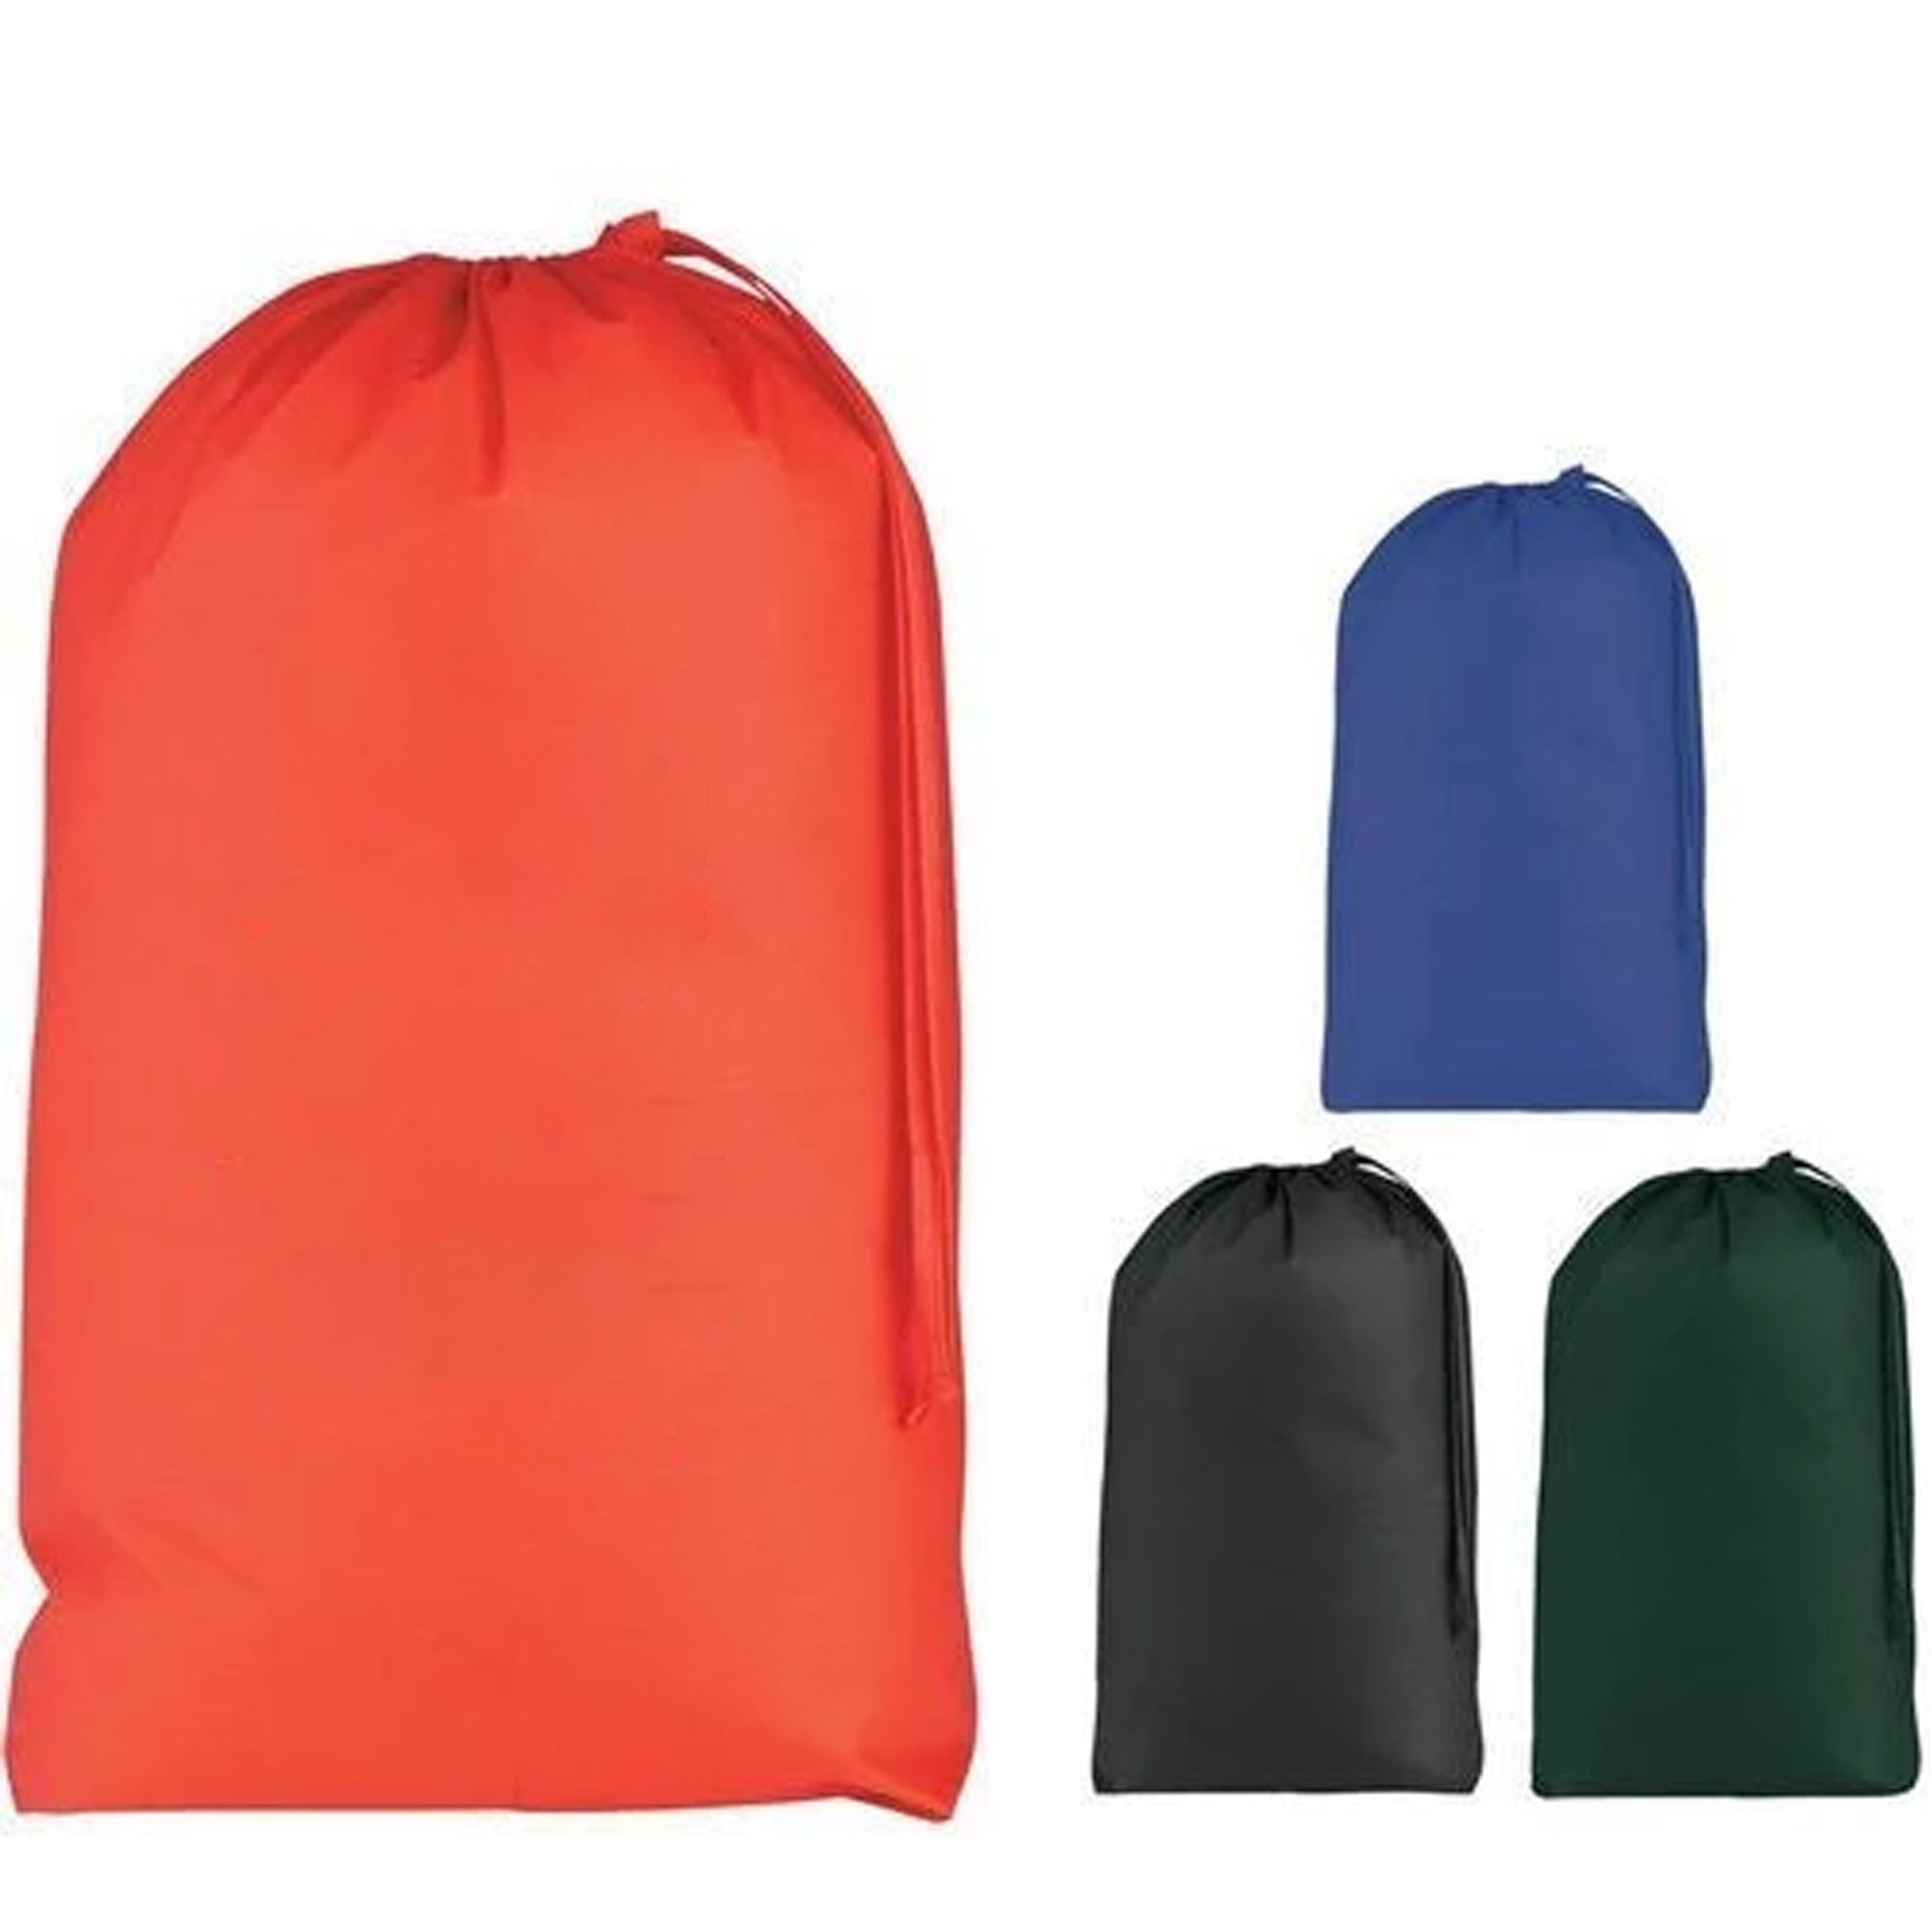 Oversize durable reusable nylon drawstring polyester laundry bag for hotel